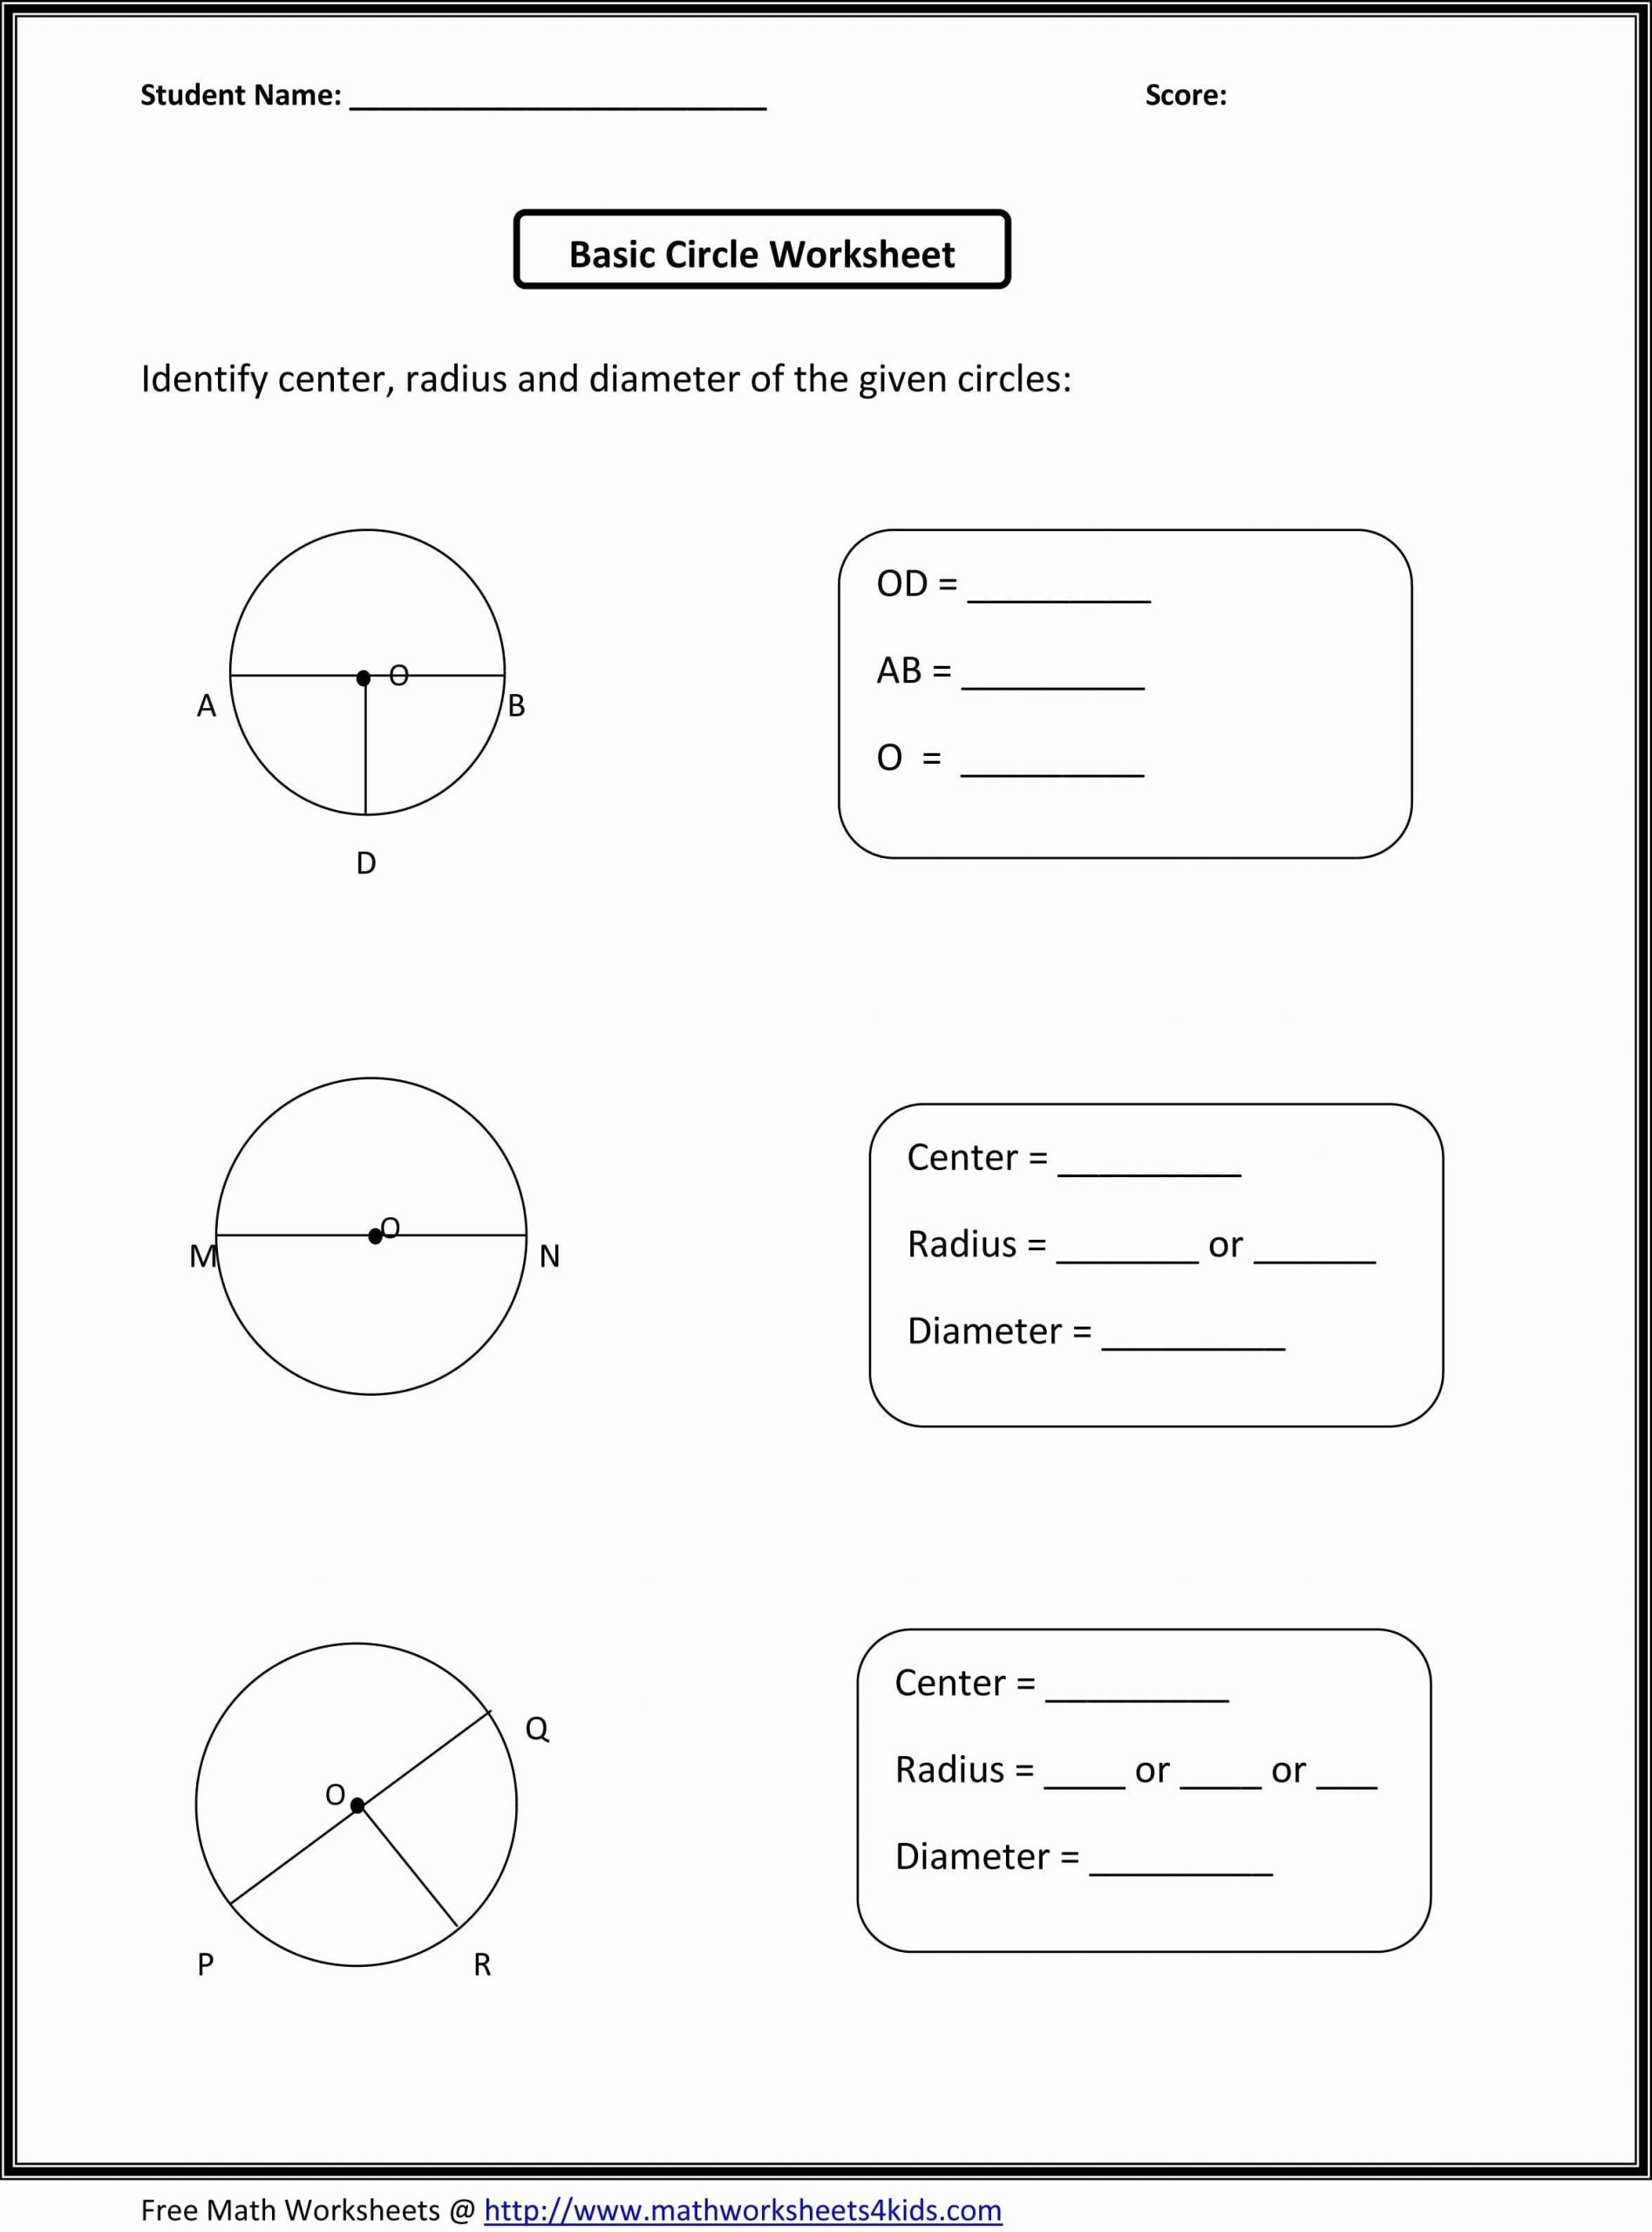 Energy Transformation Worksheets Middle School Energy Transformation Ic Worksheet Answers